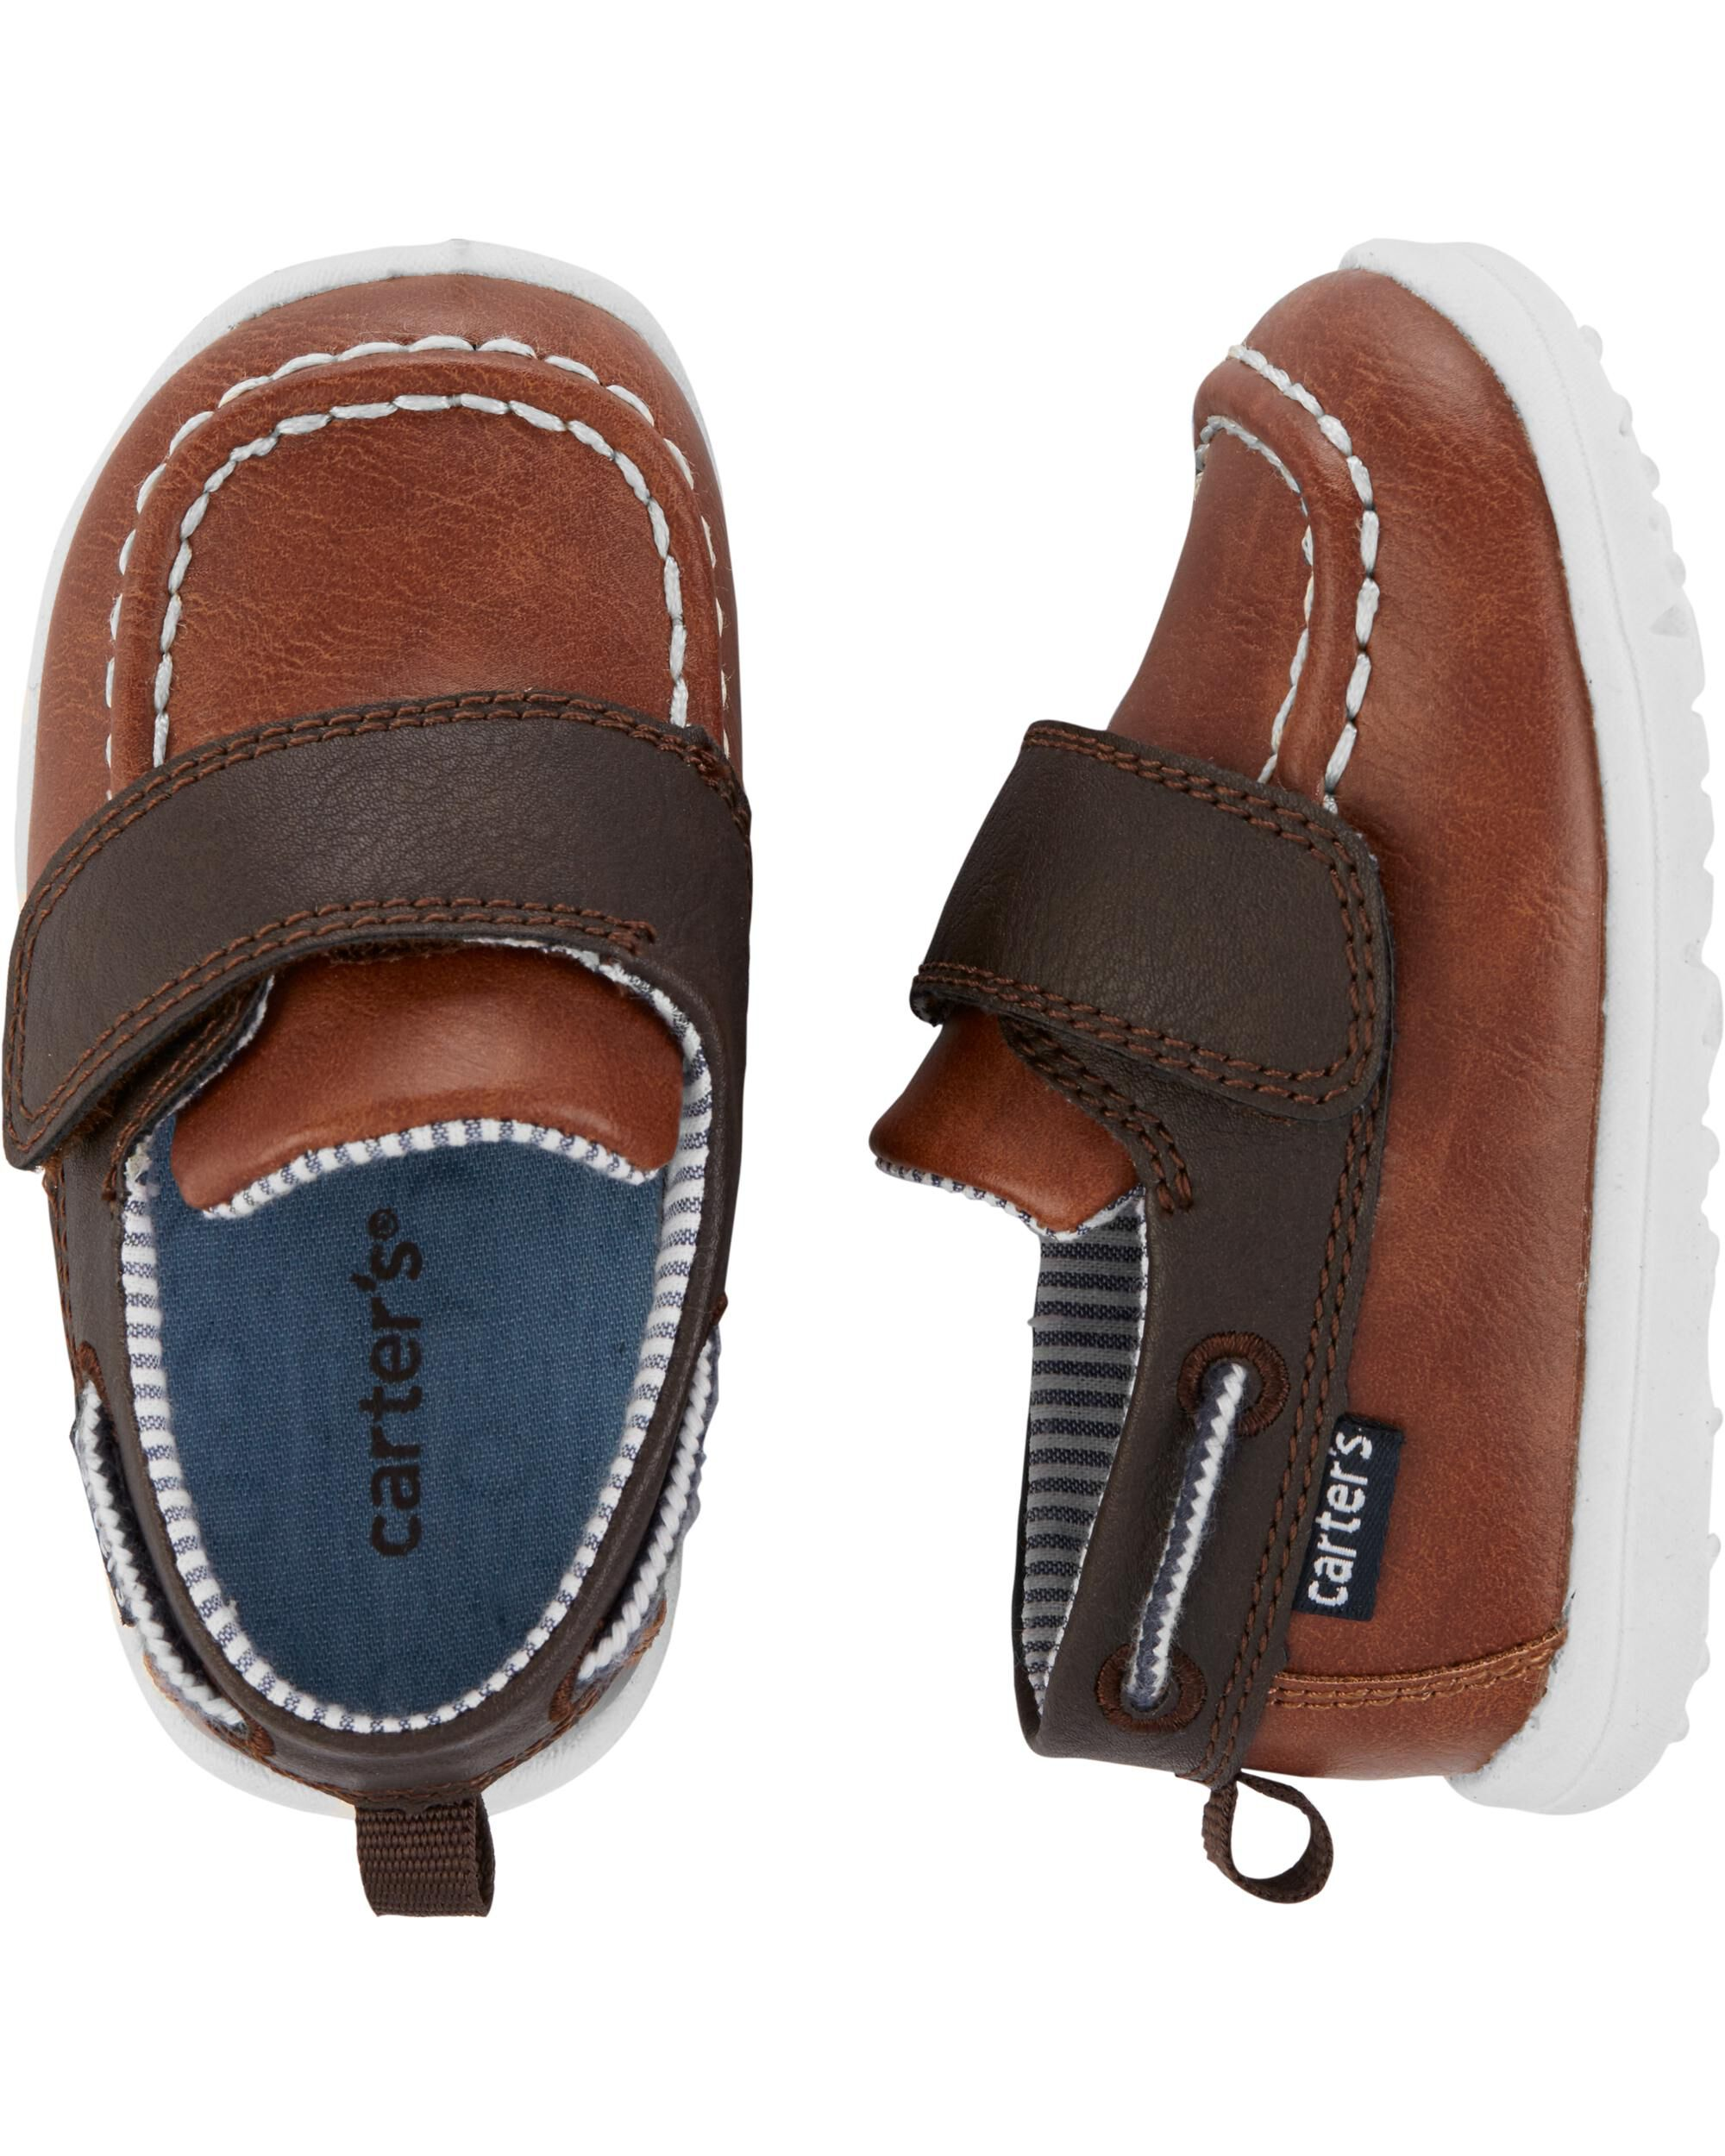 Baby Boy Shoes: Every Step/First